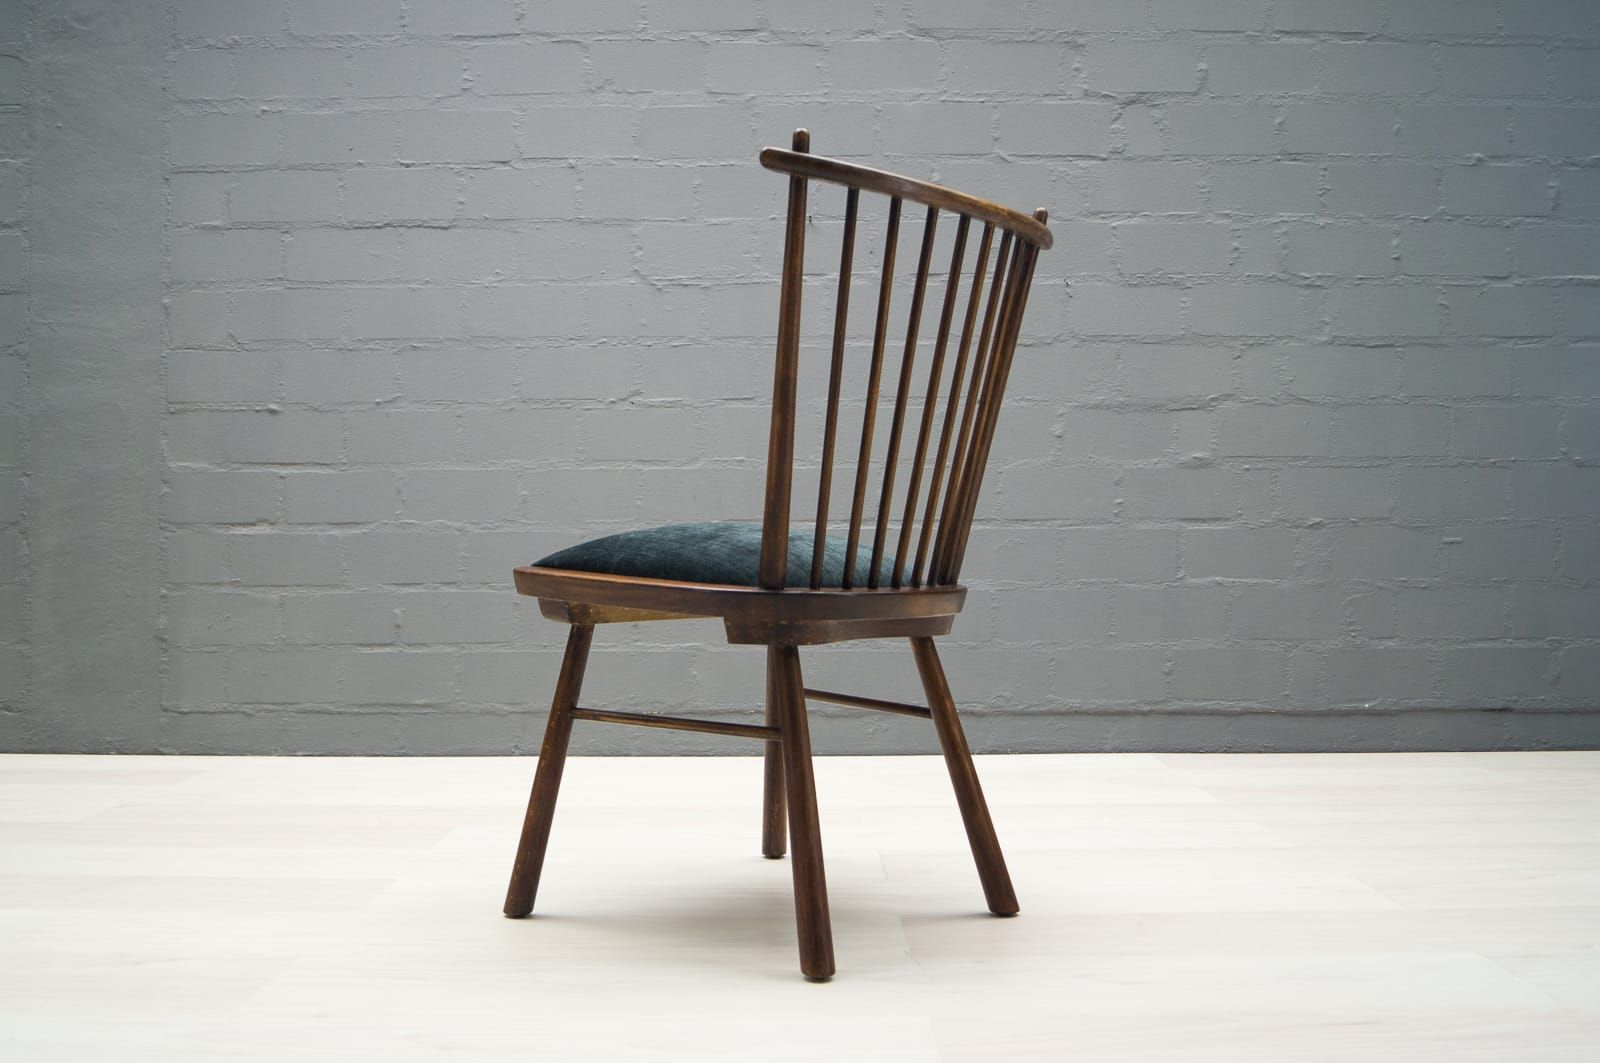 vintage wooden dining chairs posture fixing chair 1950s set of 4 for sale at